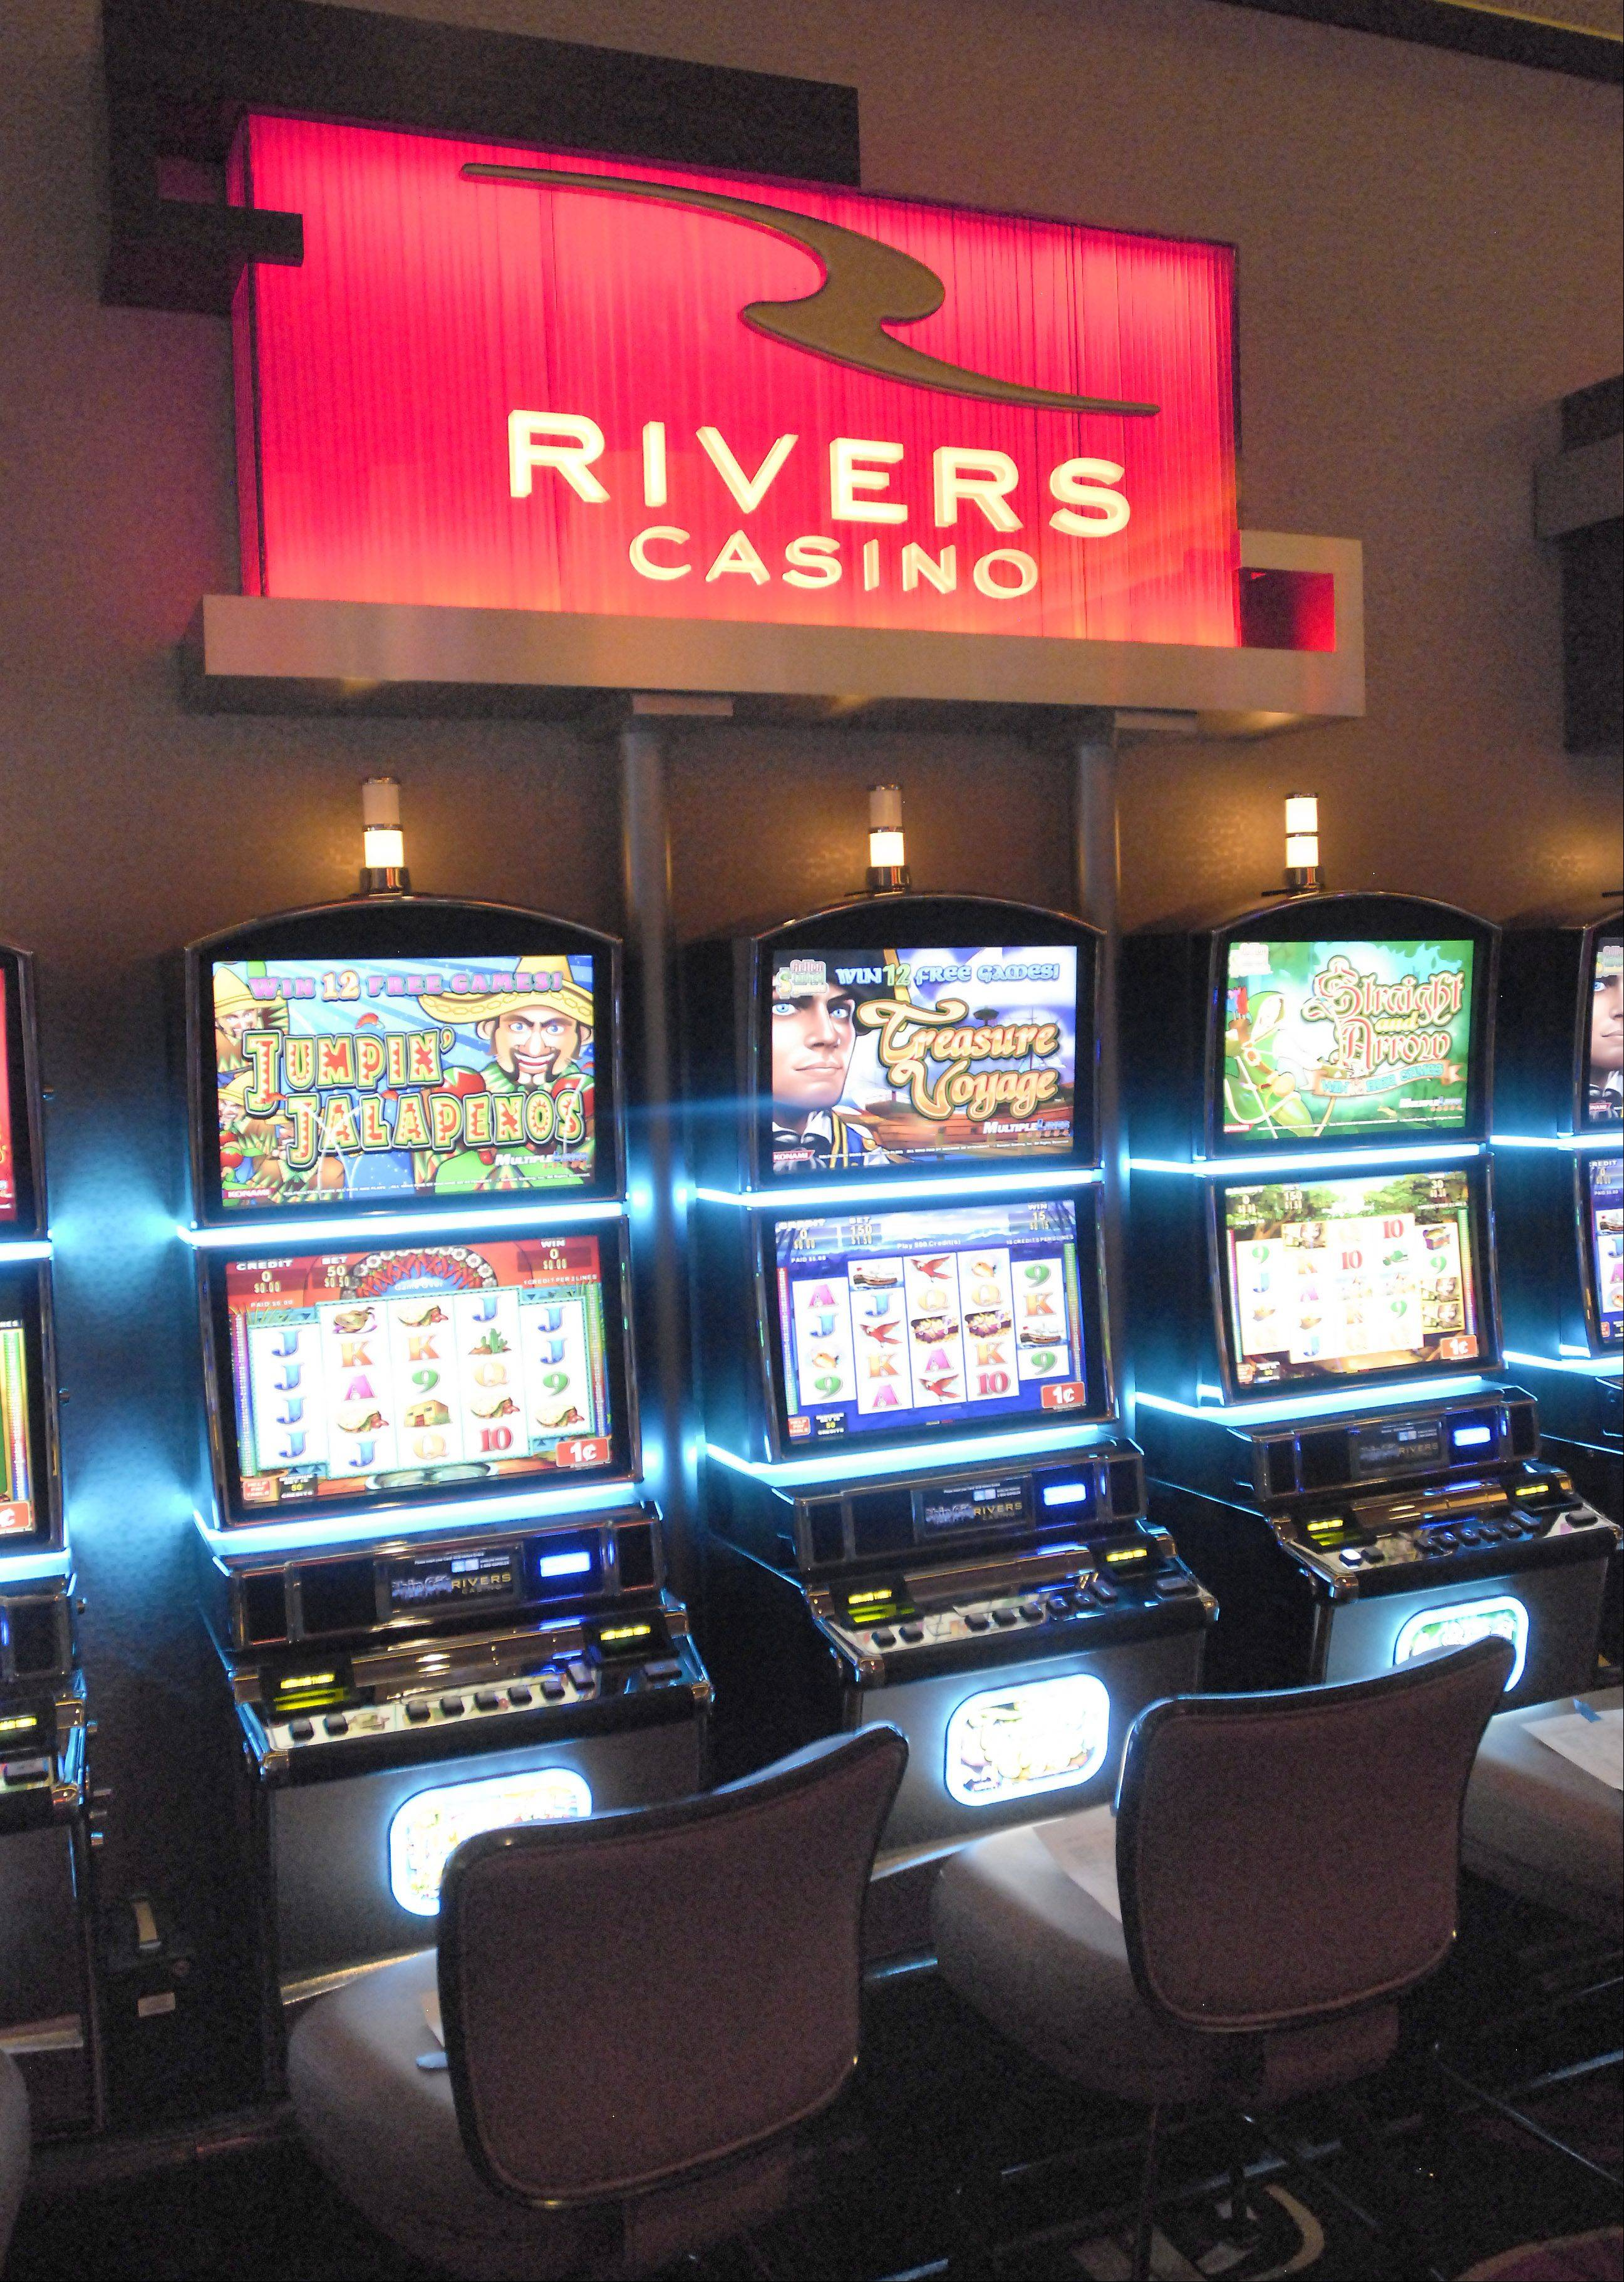 The Rivers Casino has so far avoided revenue declines seen at other suburban gambling palaces.